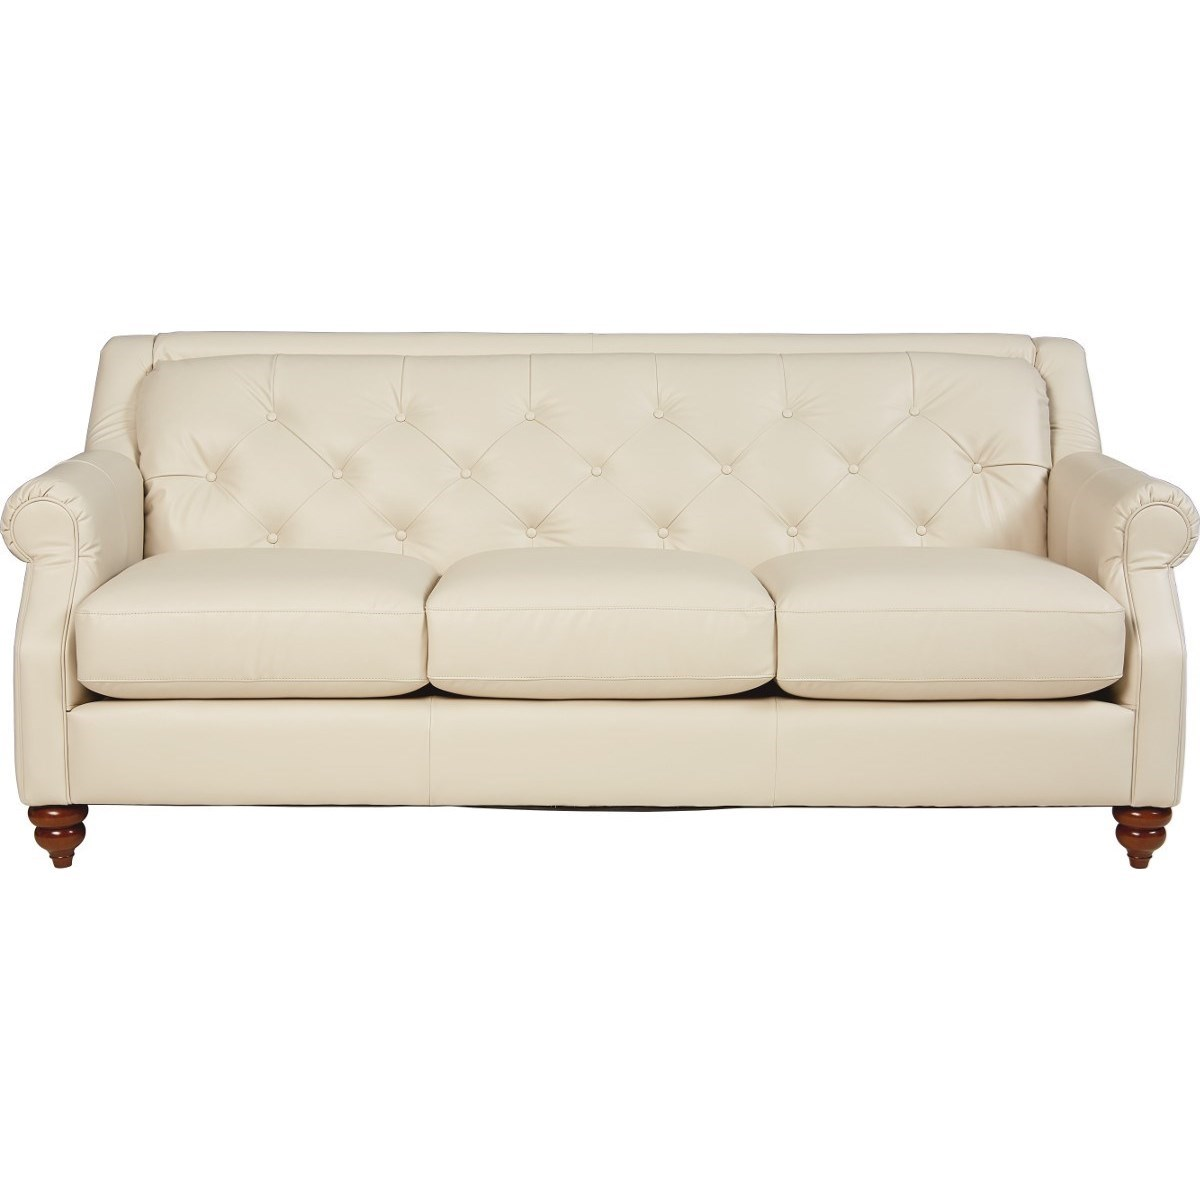 Aberdeen Sofa by La-Z-Boy at Jordan's Home Furnishings